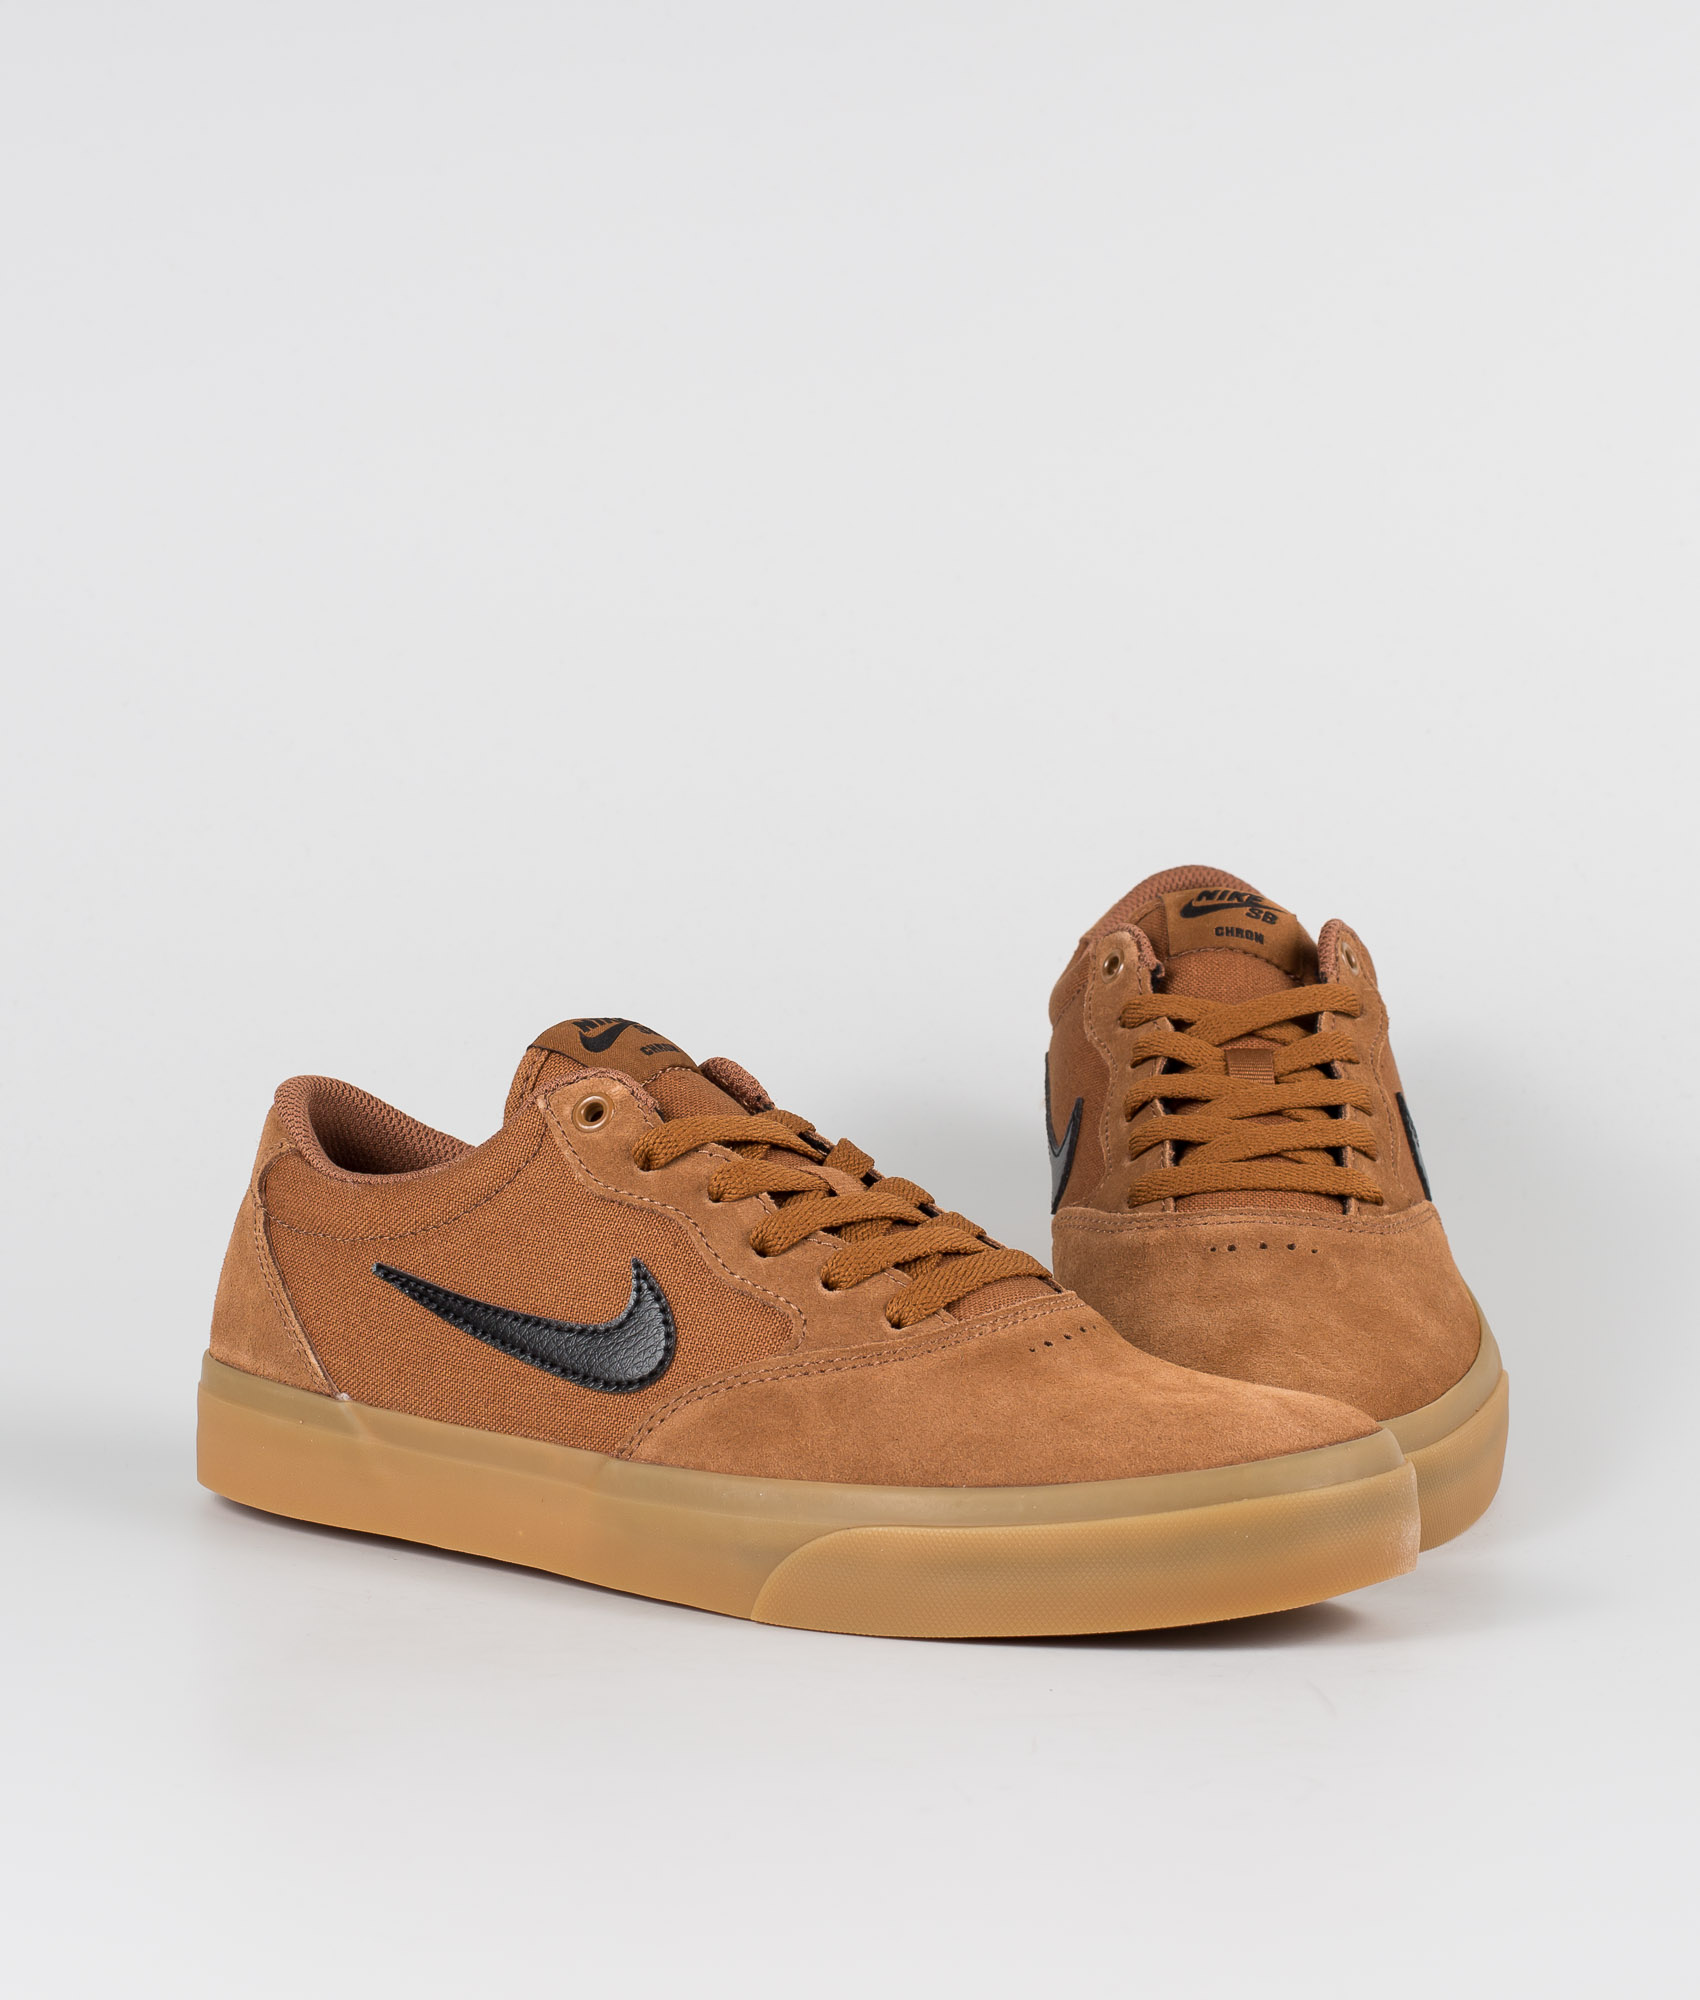 NIKE SB TEAM EDITION WHITE BLACK GUM LIGHT BROWN